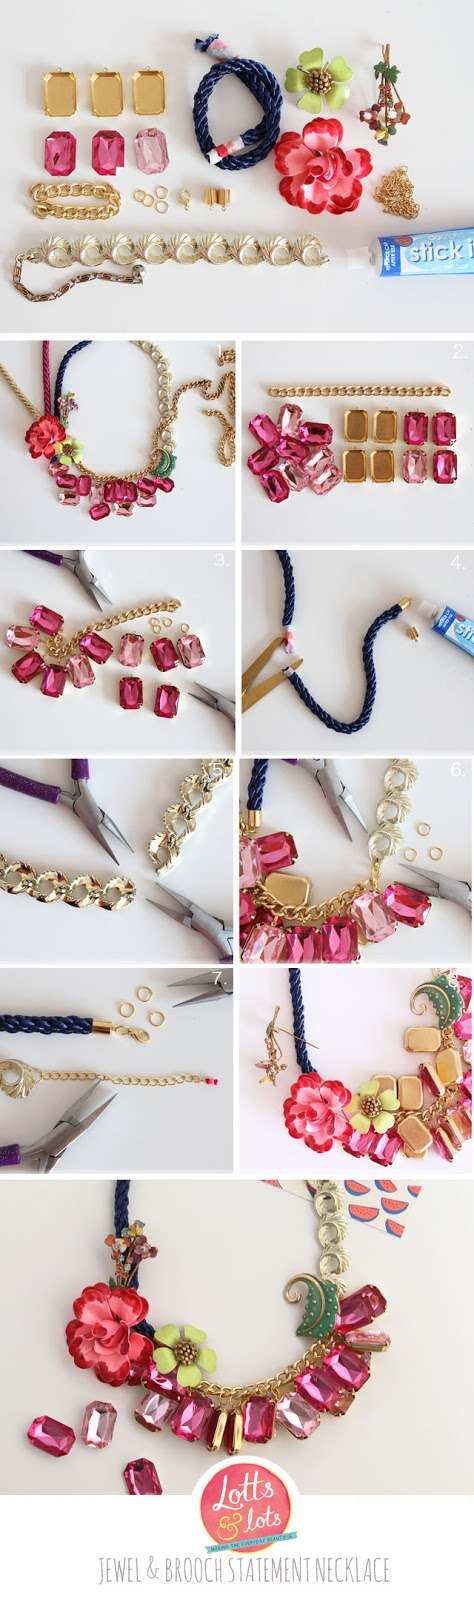 DIY - jewel and brooch statement necklace | Lotts and Lots ...